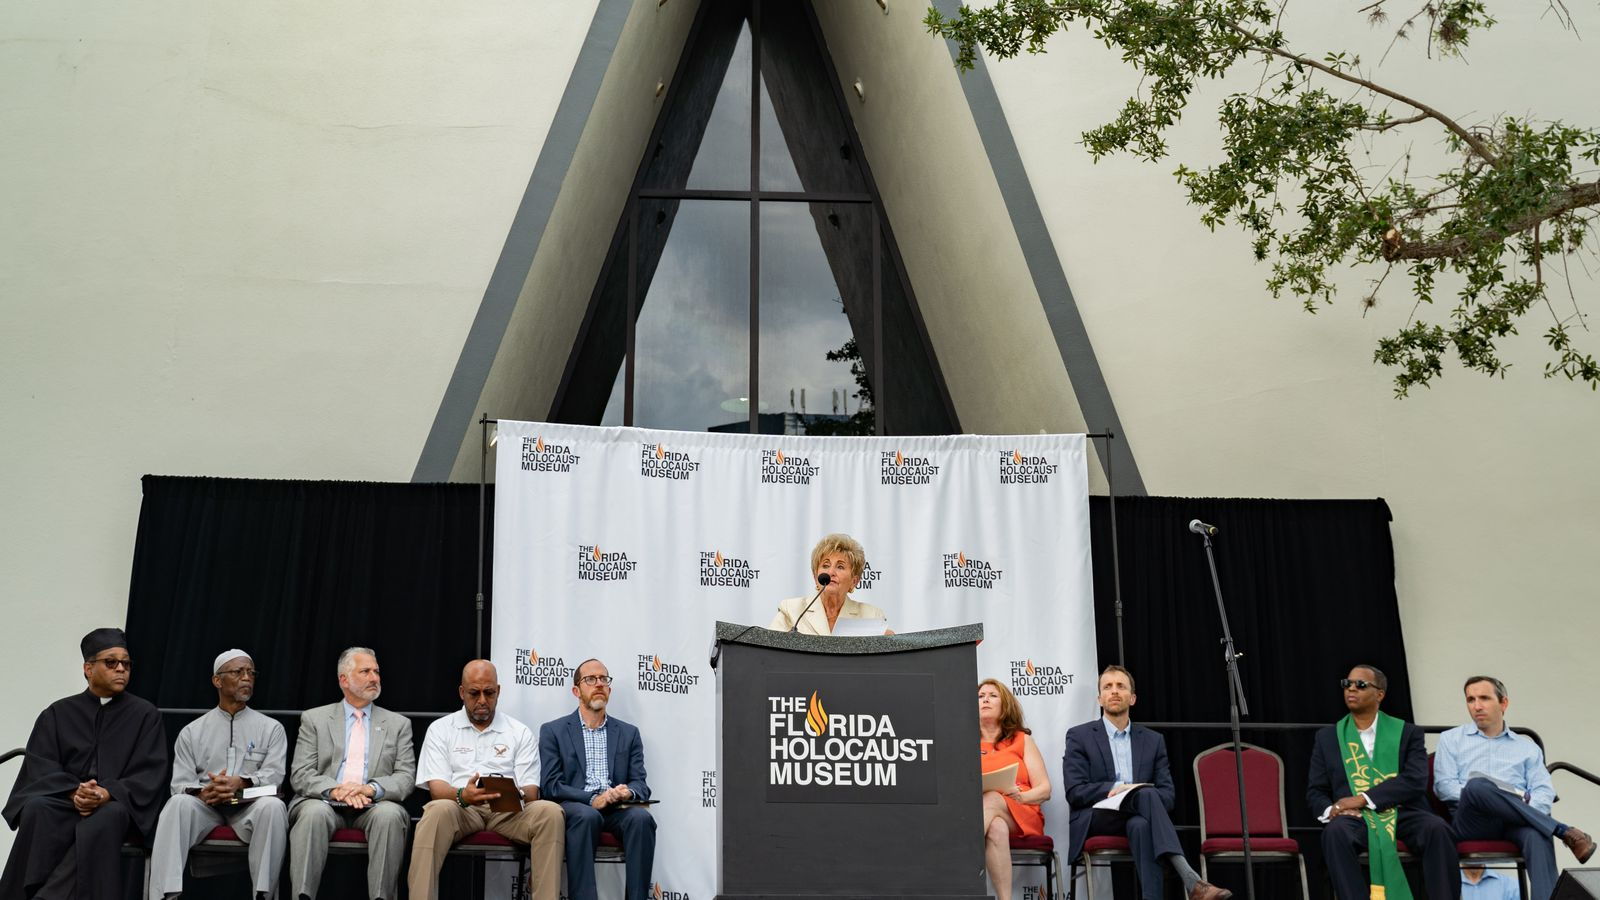 Holocaust survivor Toni Rinde shares her story during a Unite Against Hate vigil outside the Florida Holocaust Museum Thursday in St. Petersburg.